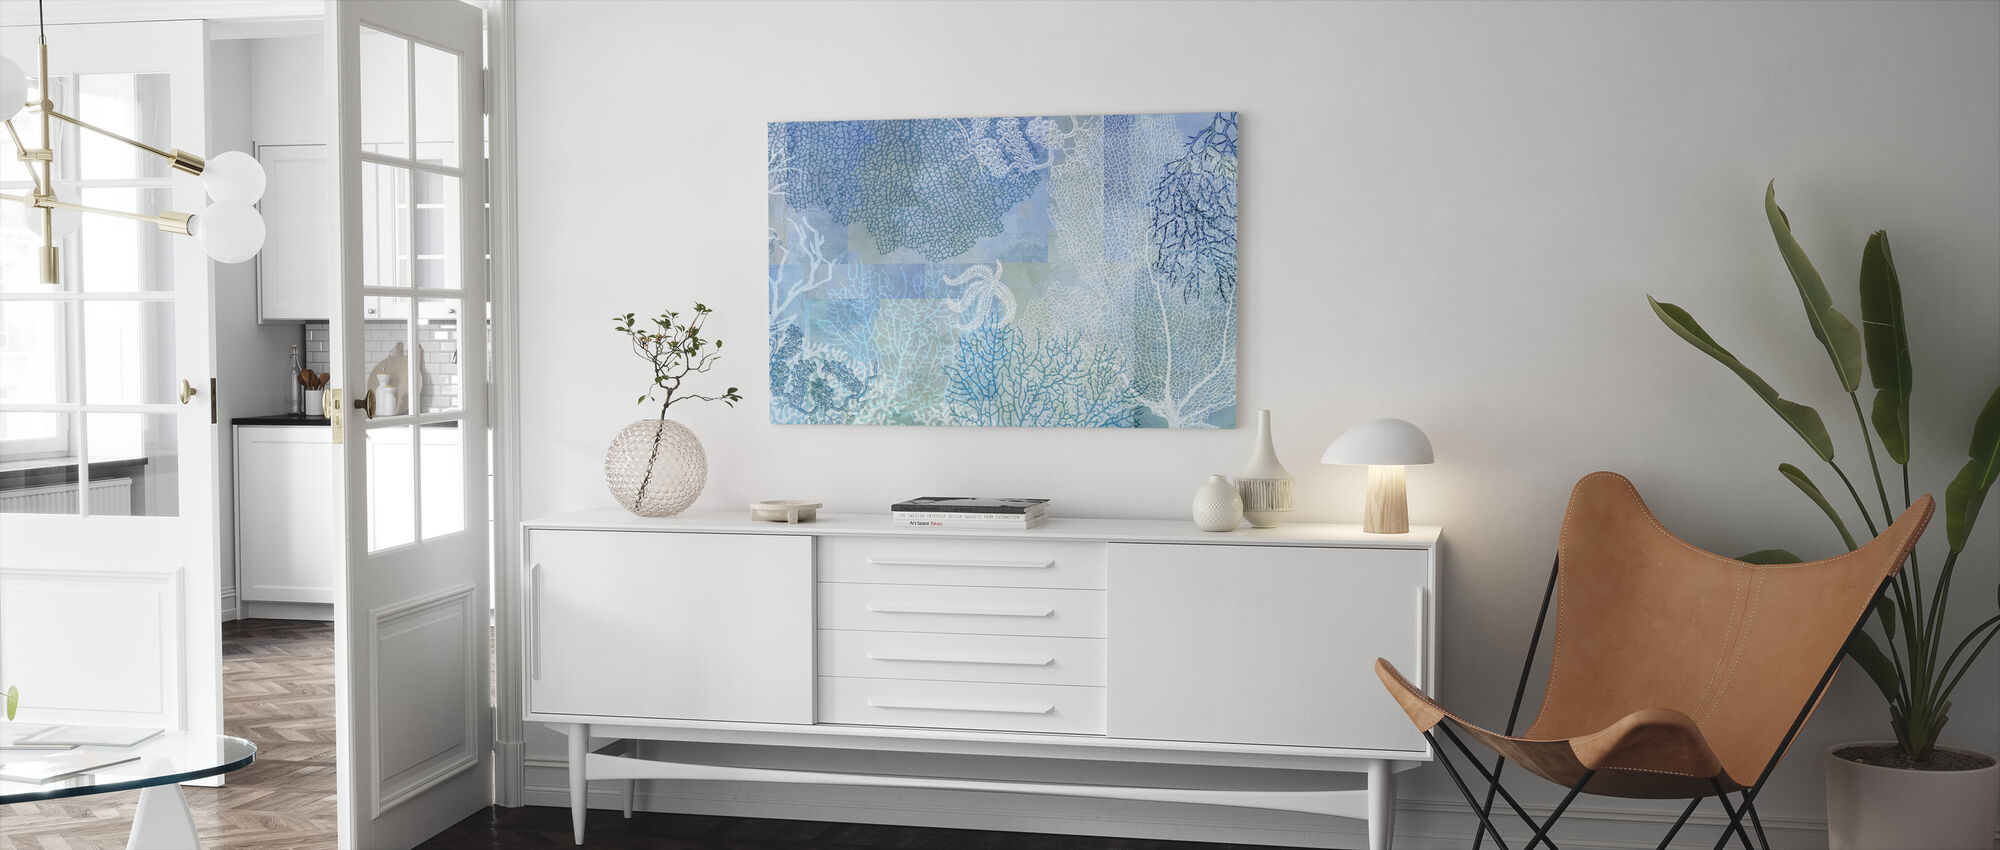 Blue Sea Water - Canvas print - Living Room